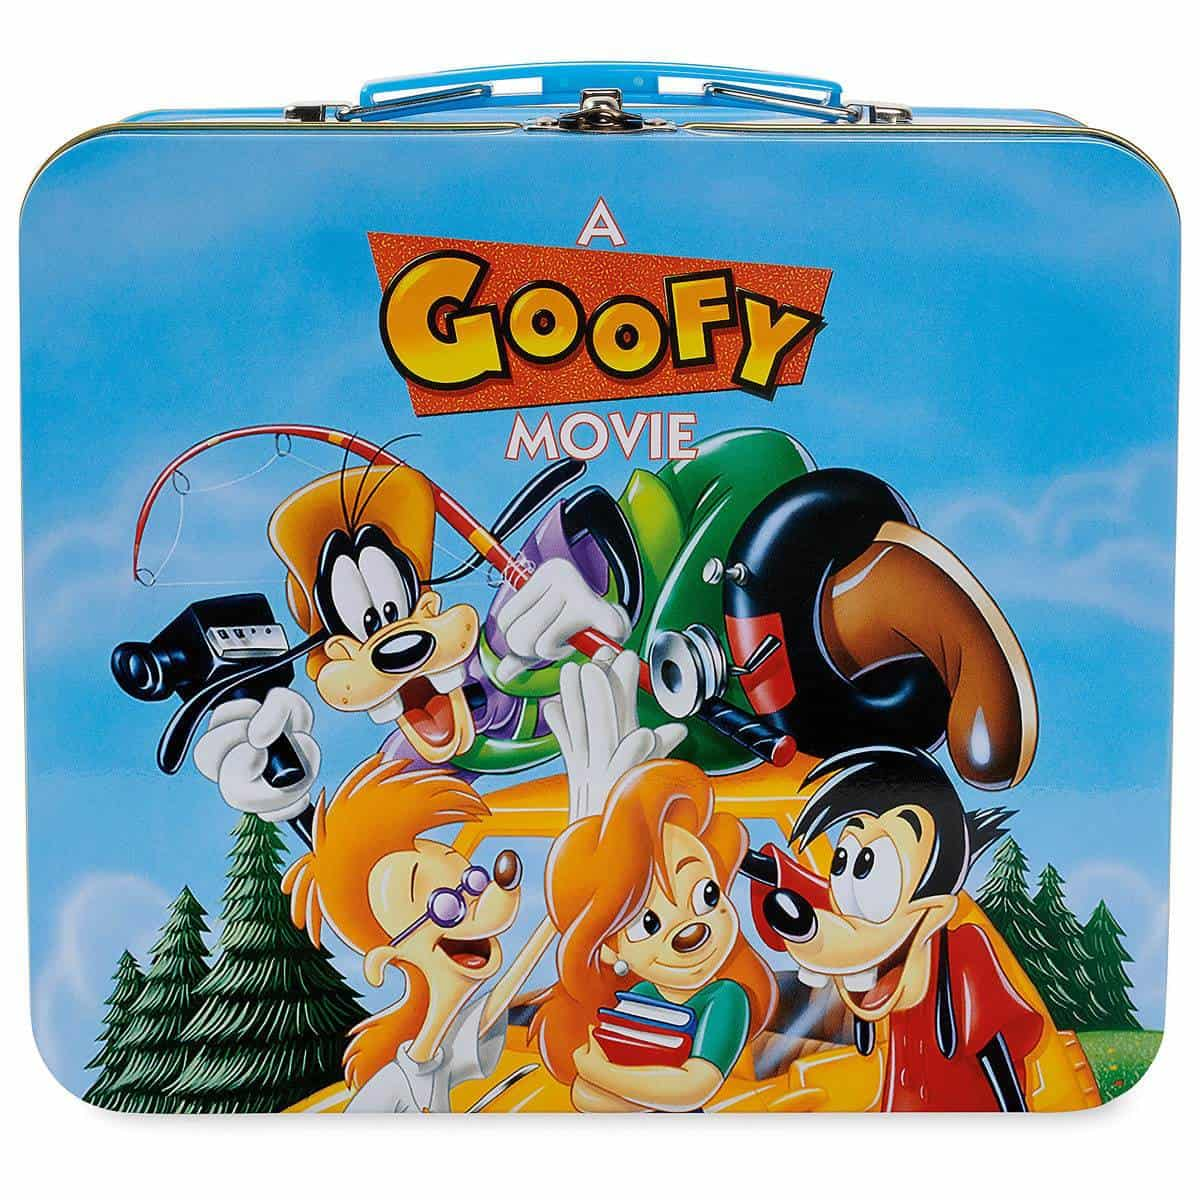 Photo of A Goofy Movie lunch box from Oh My Disney '90s Flashback Collection